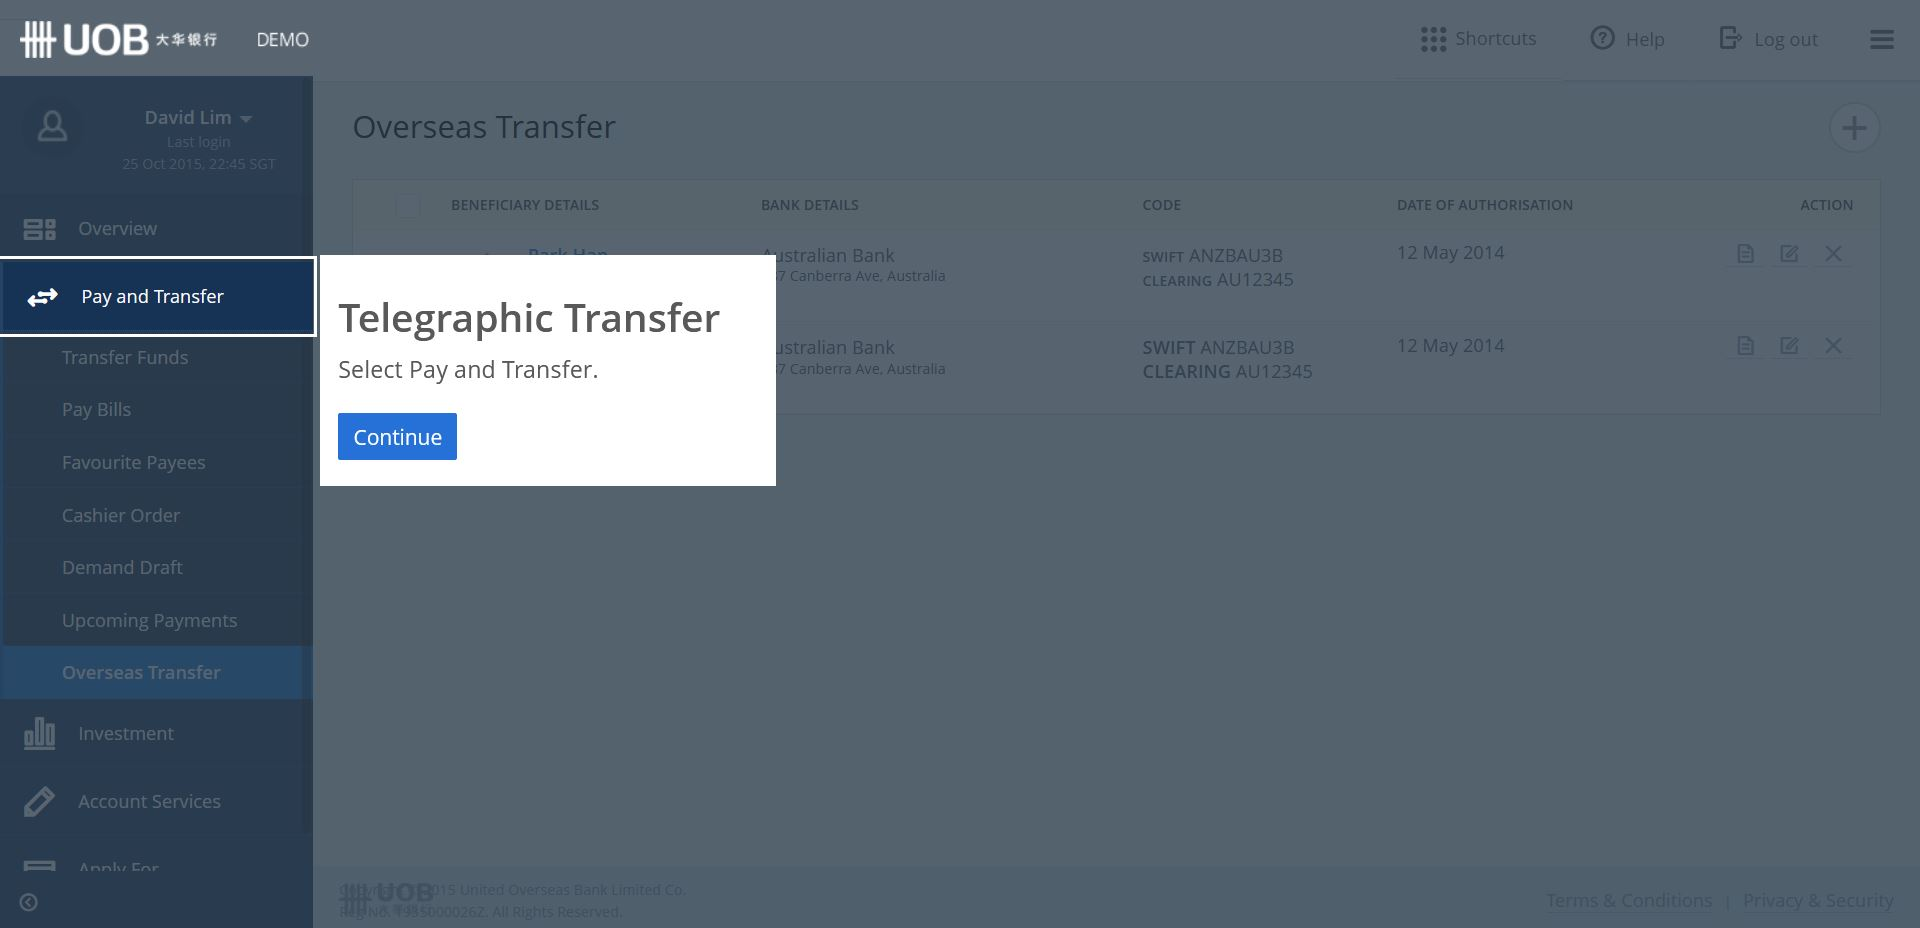 How Do I Transfer Money from UOB to Overseas Bank Online